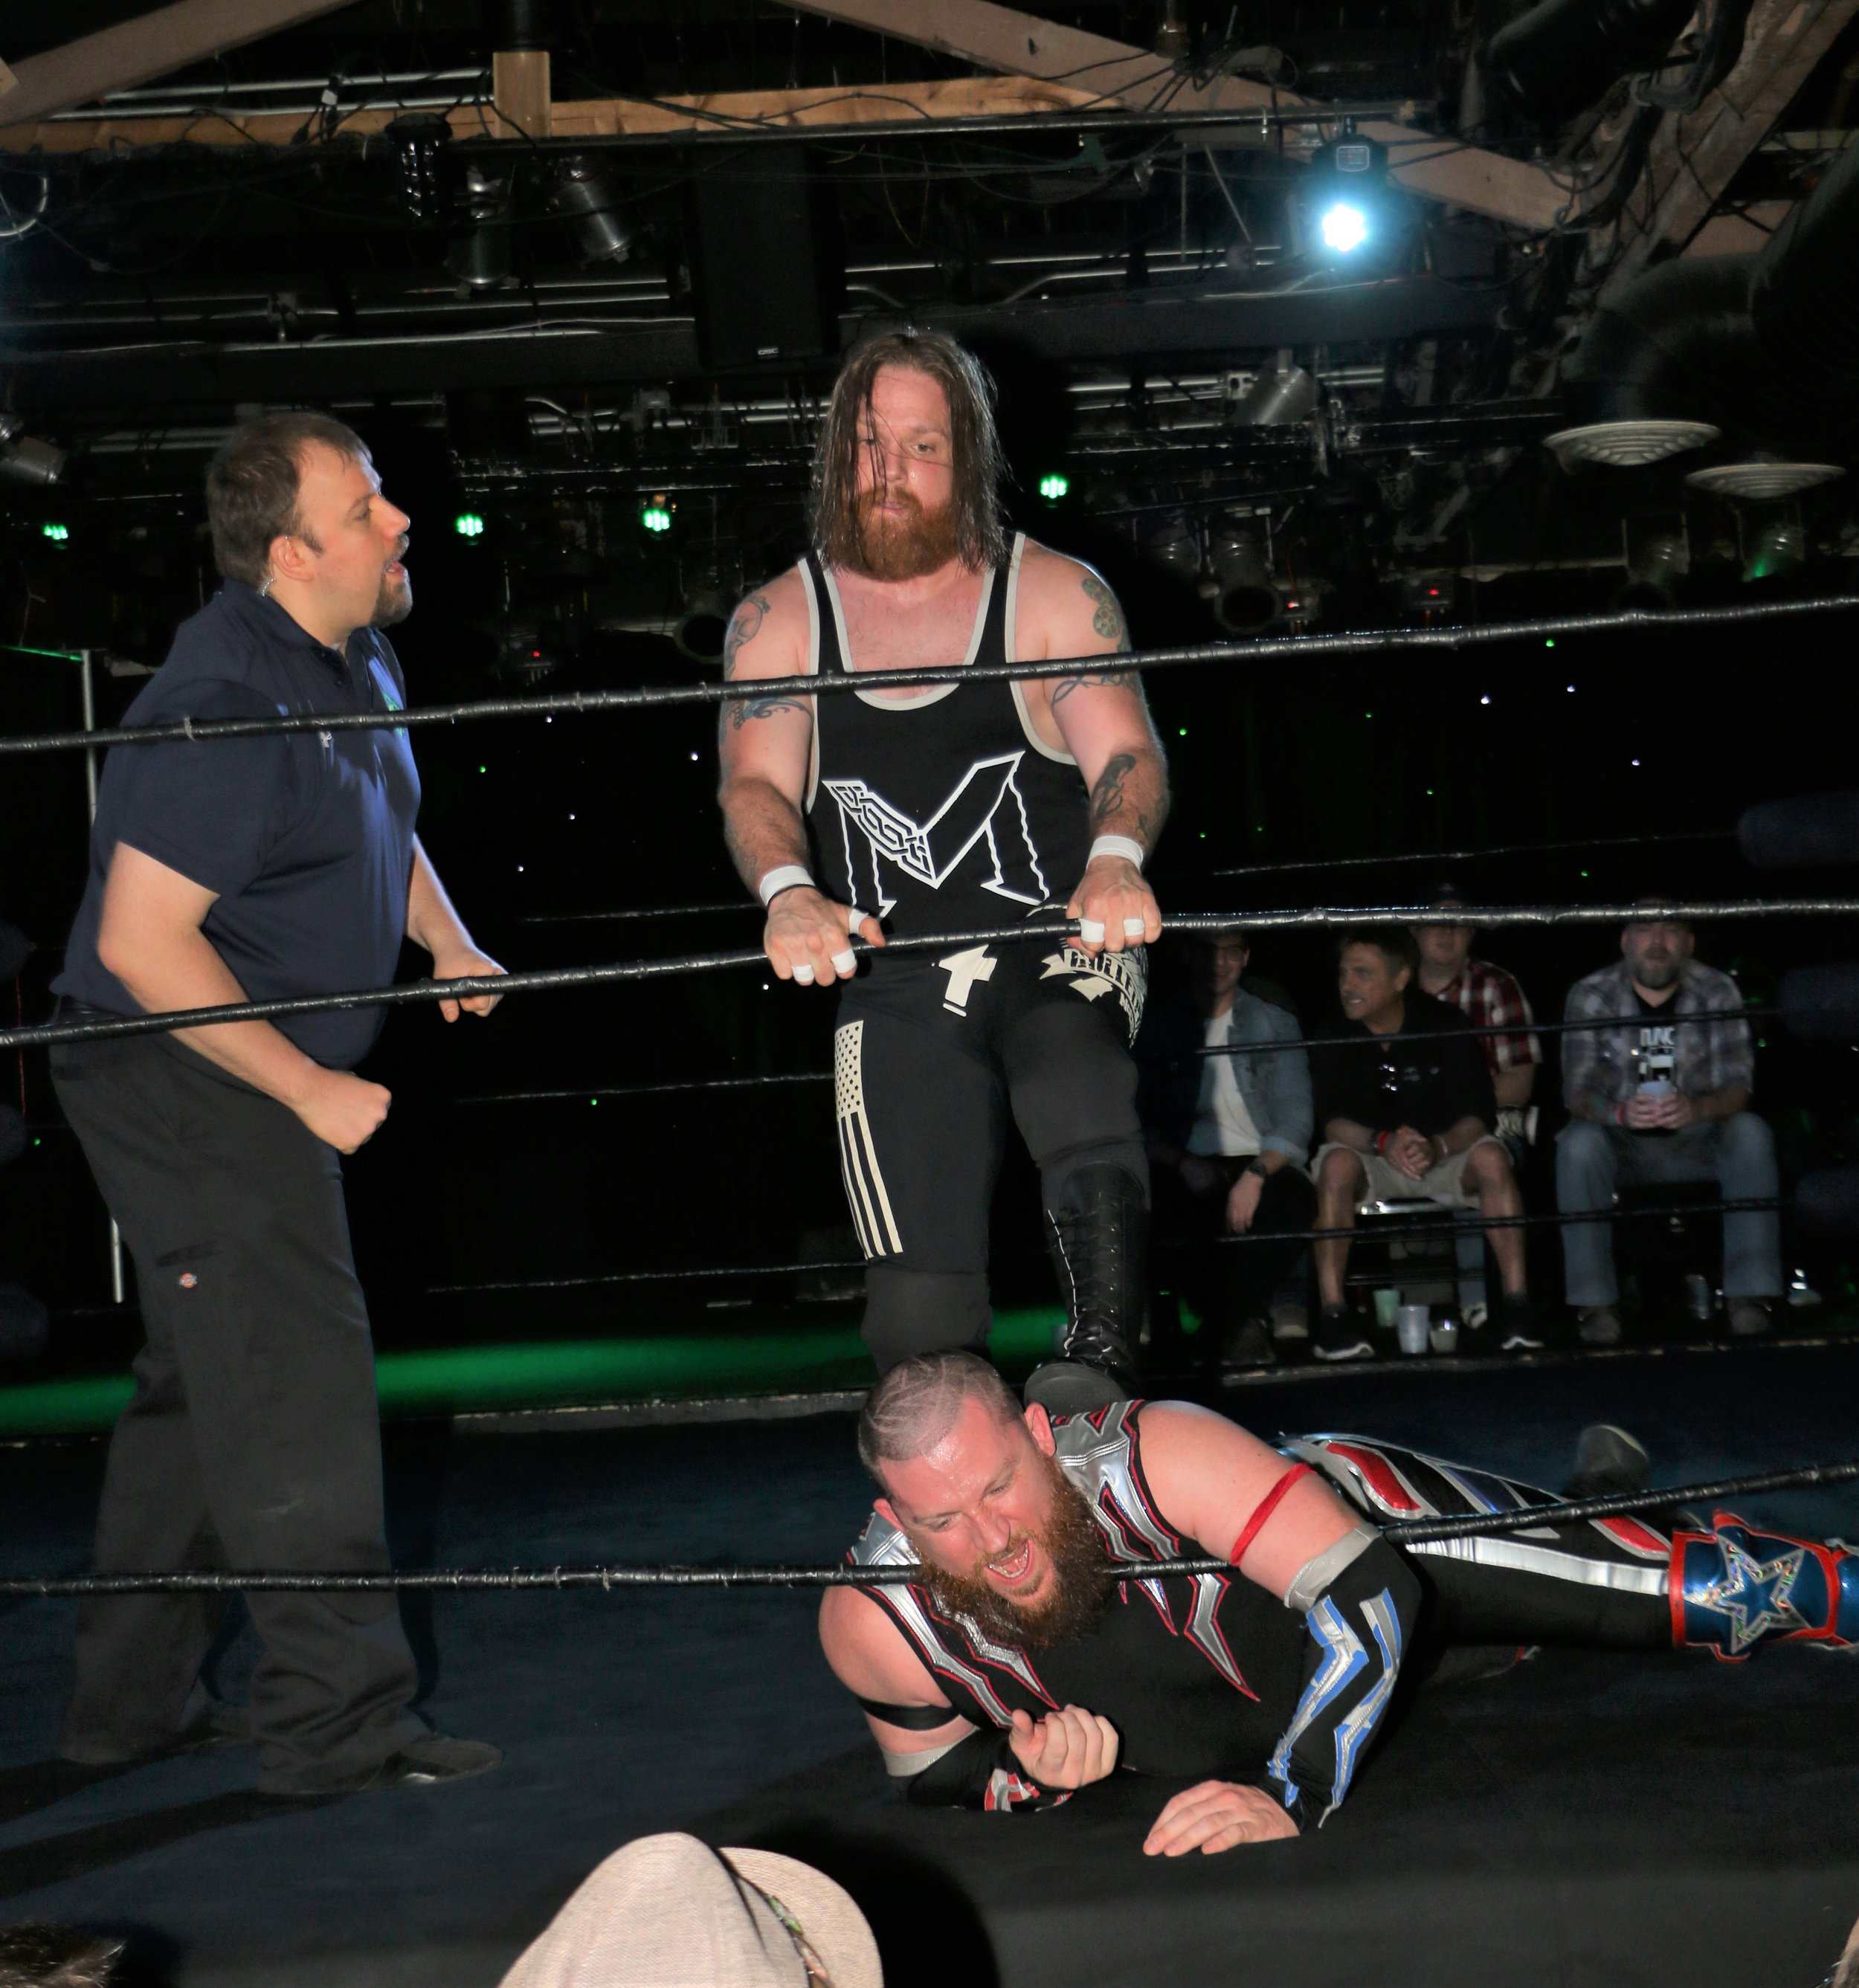 The referee warns Ben McCoy, who choking Gringo Loco on the bottom rope.